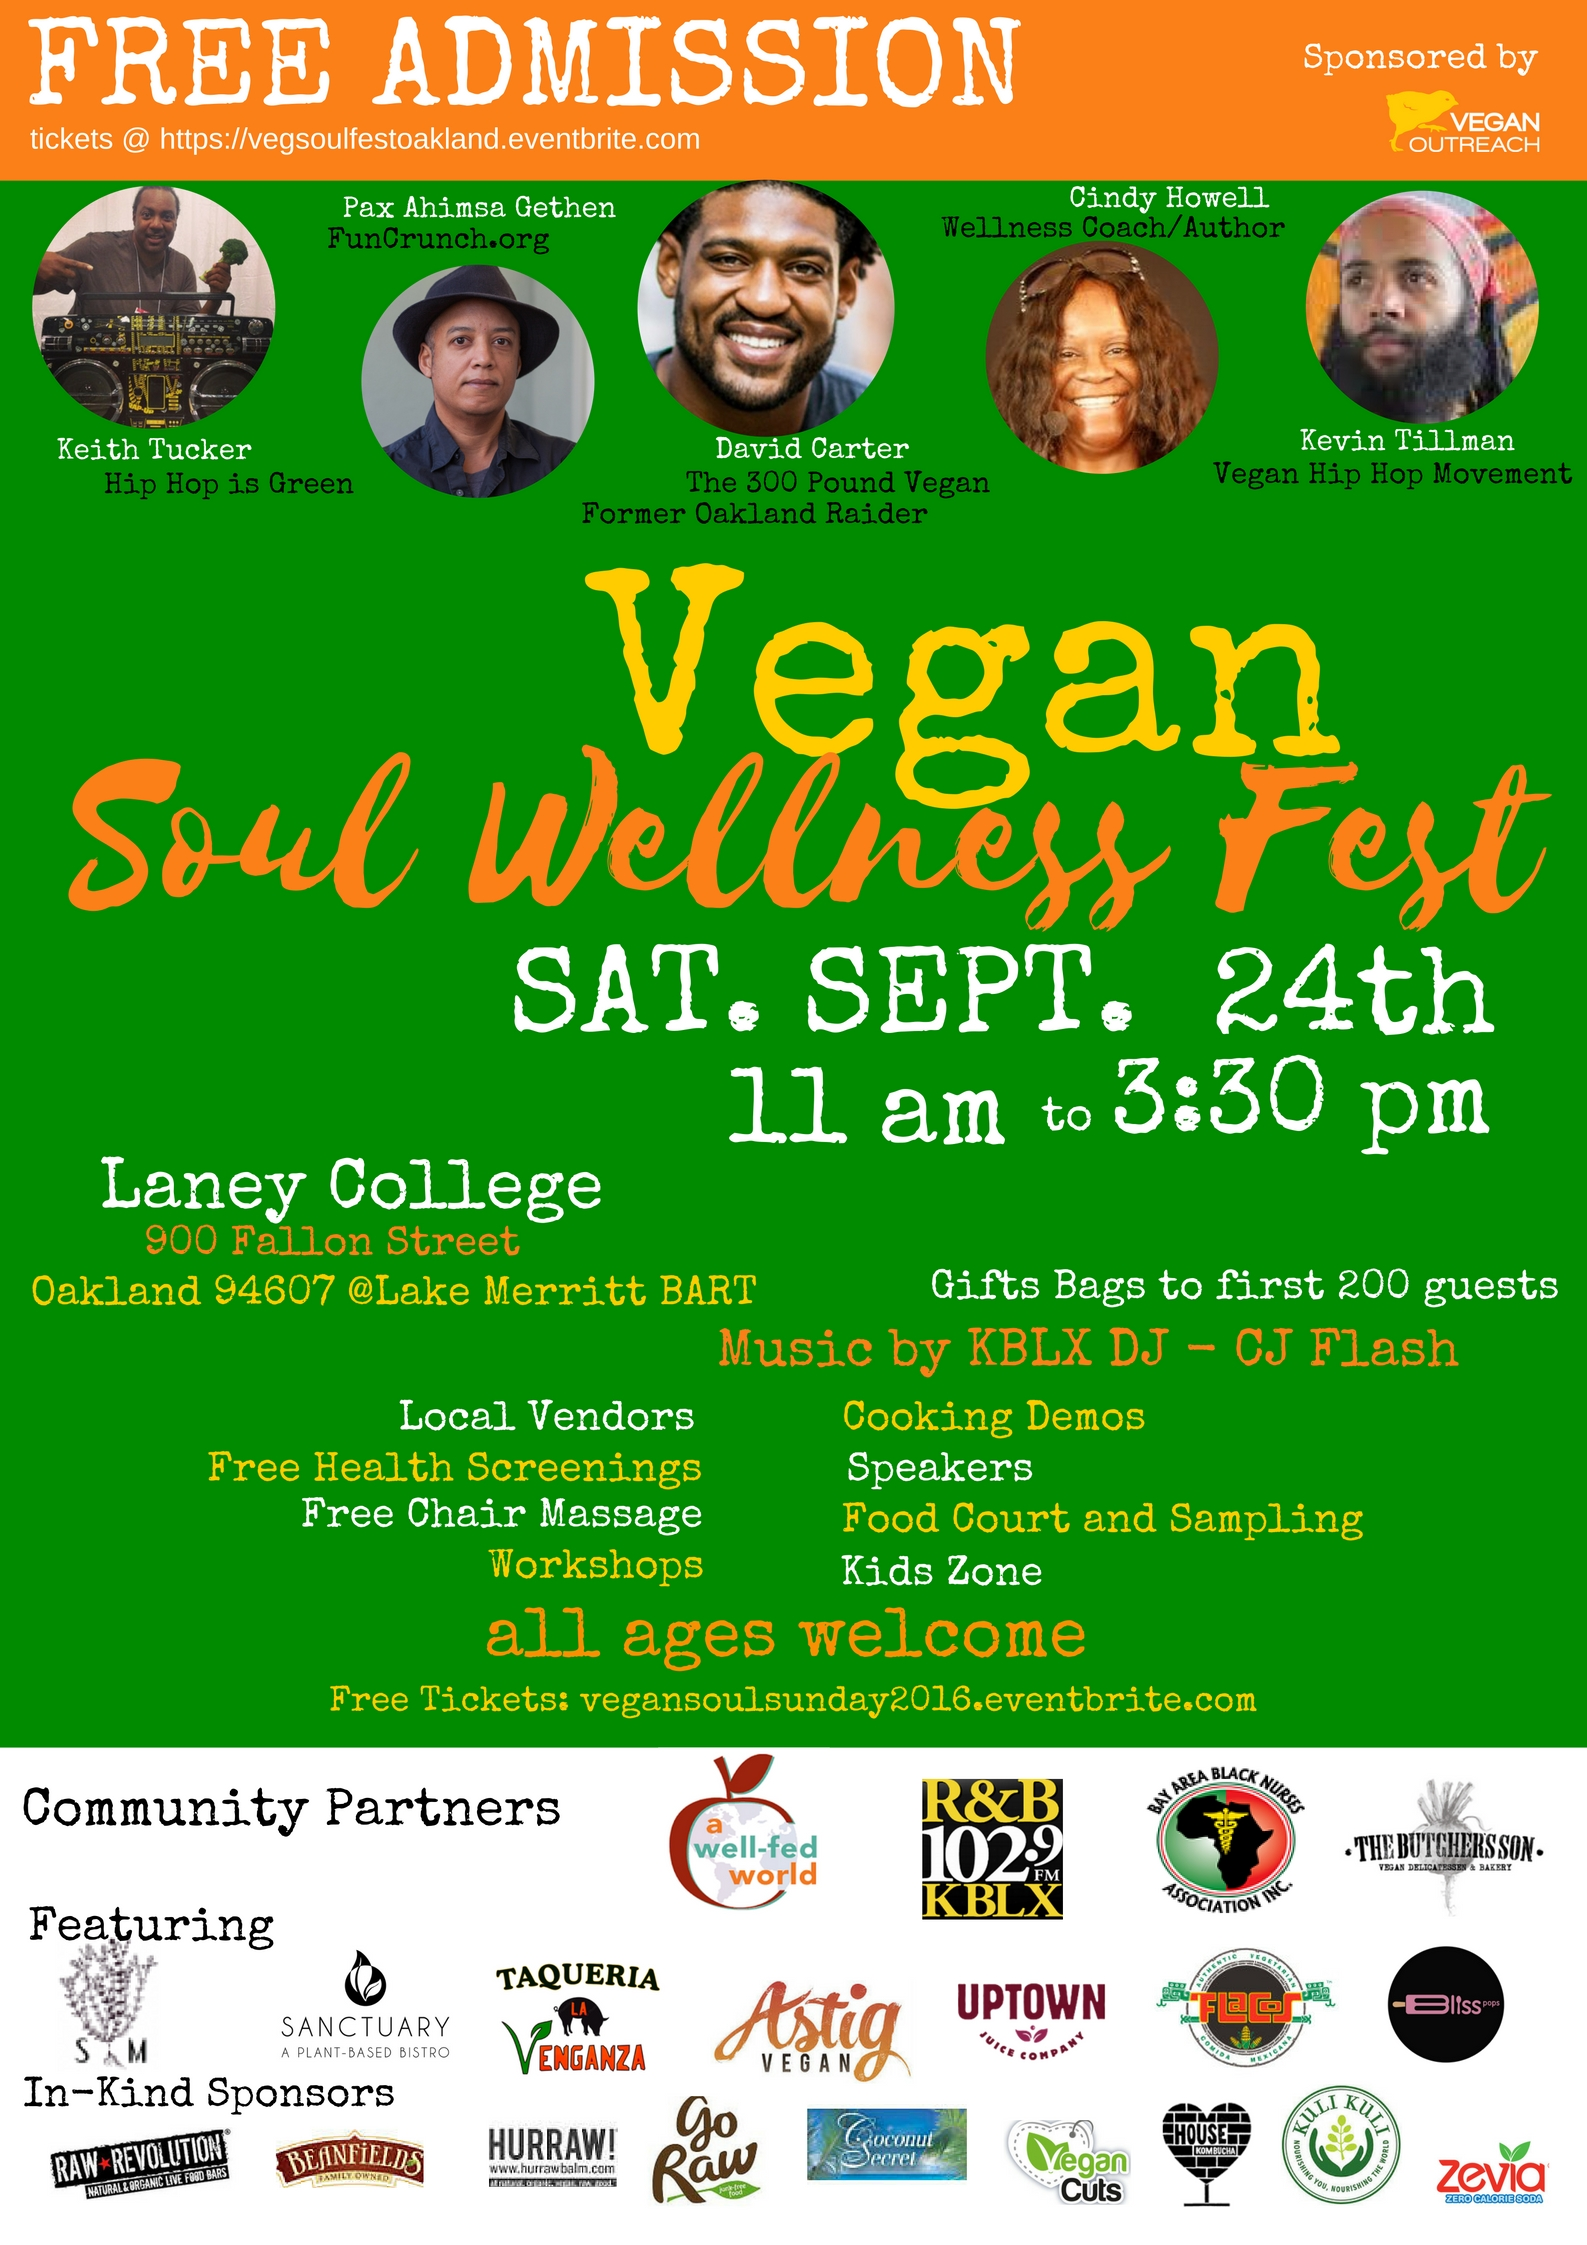 vegan-soul-wellness-fest